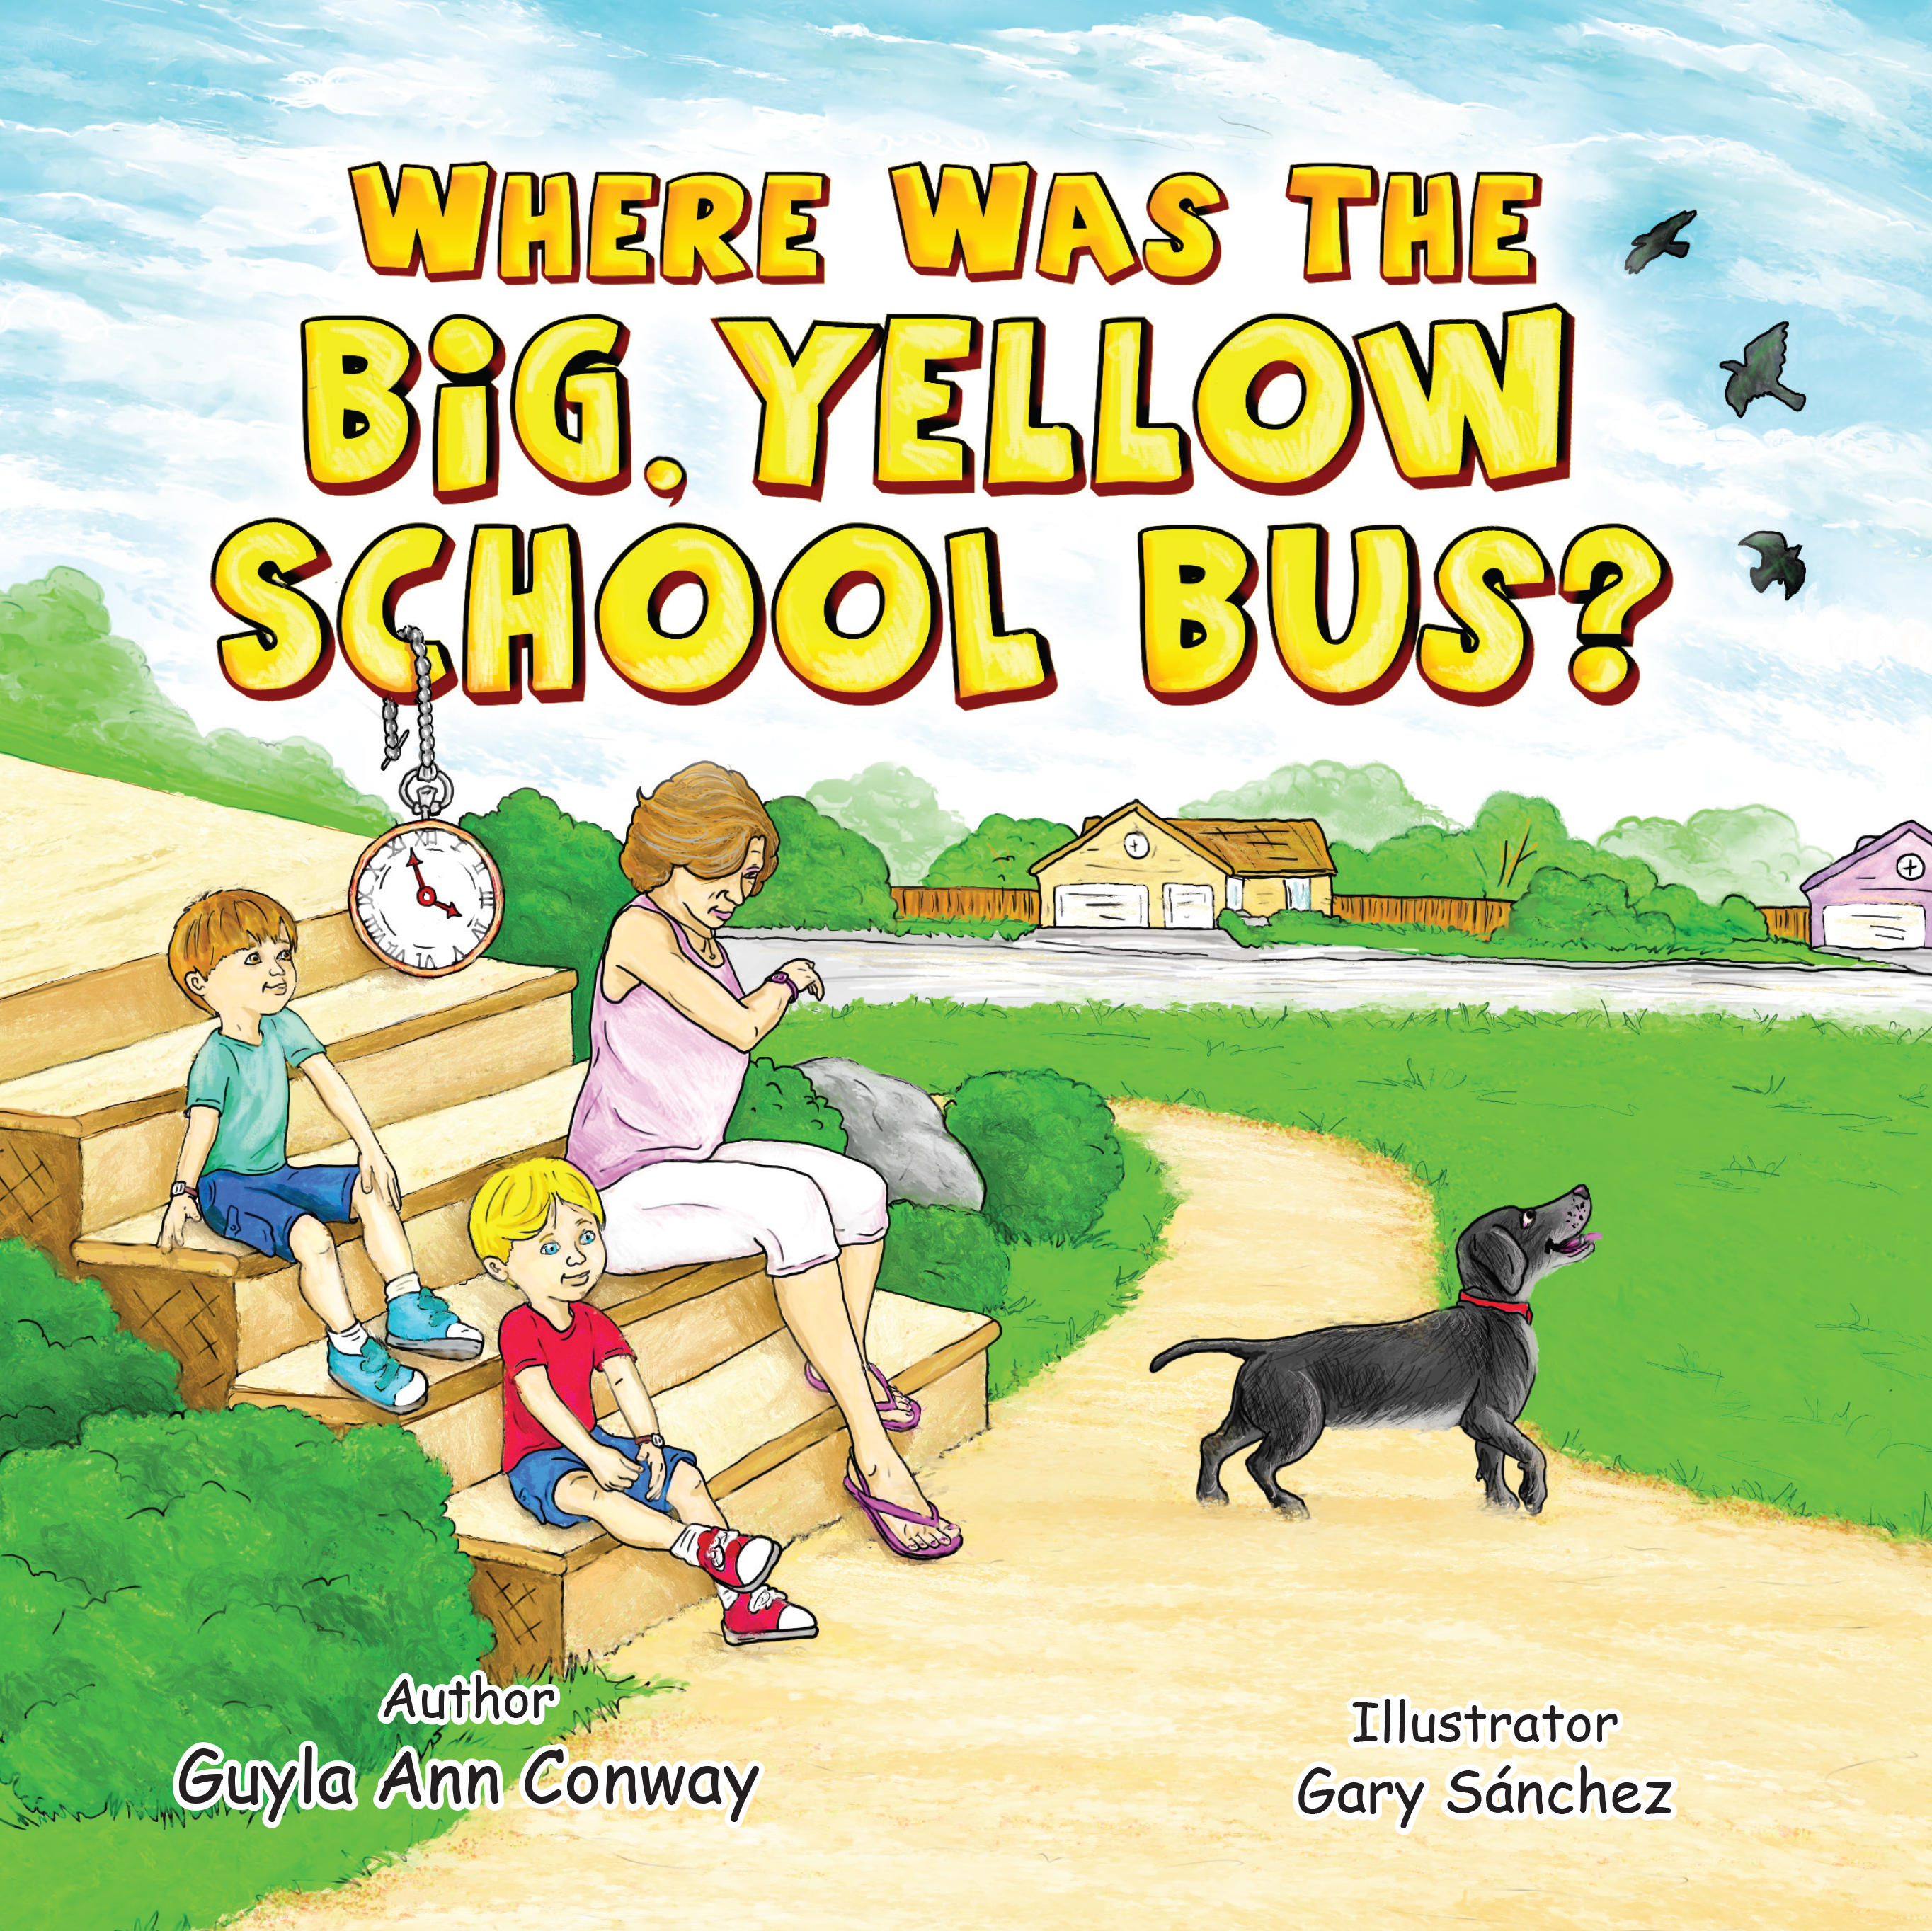 Where Was the Yellow School Bus?